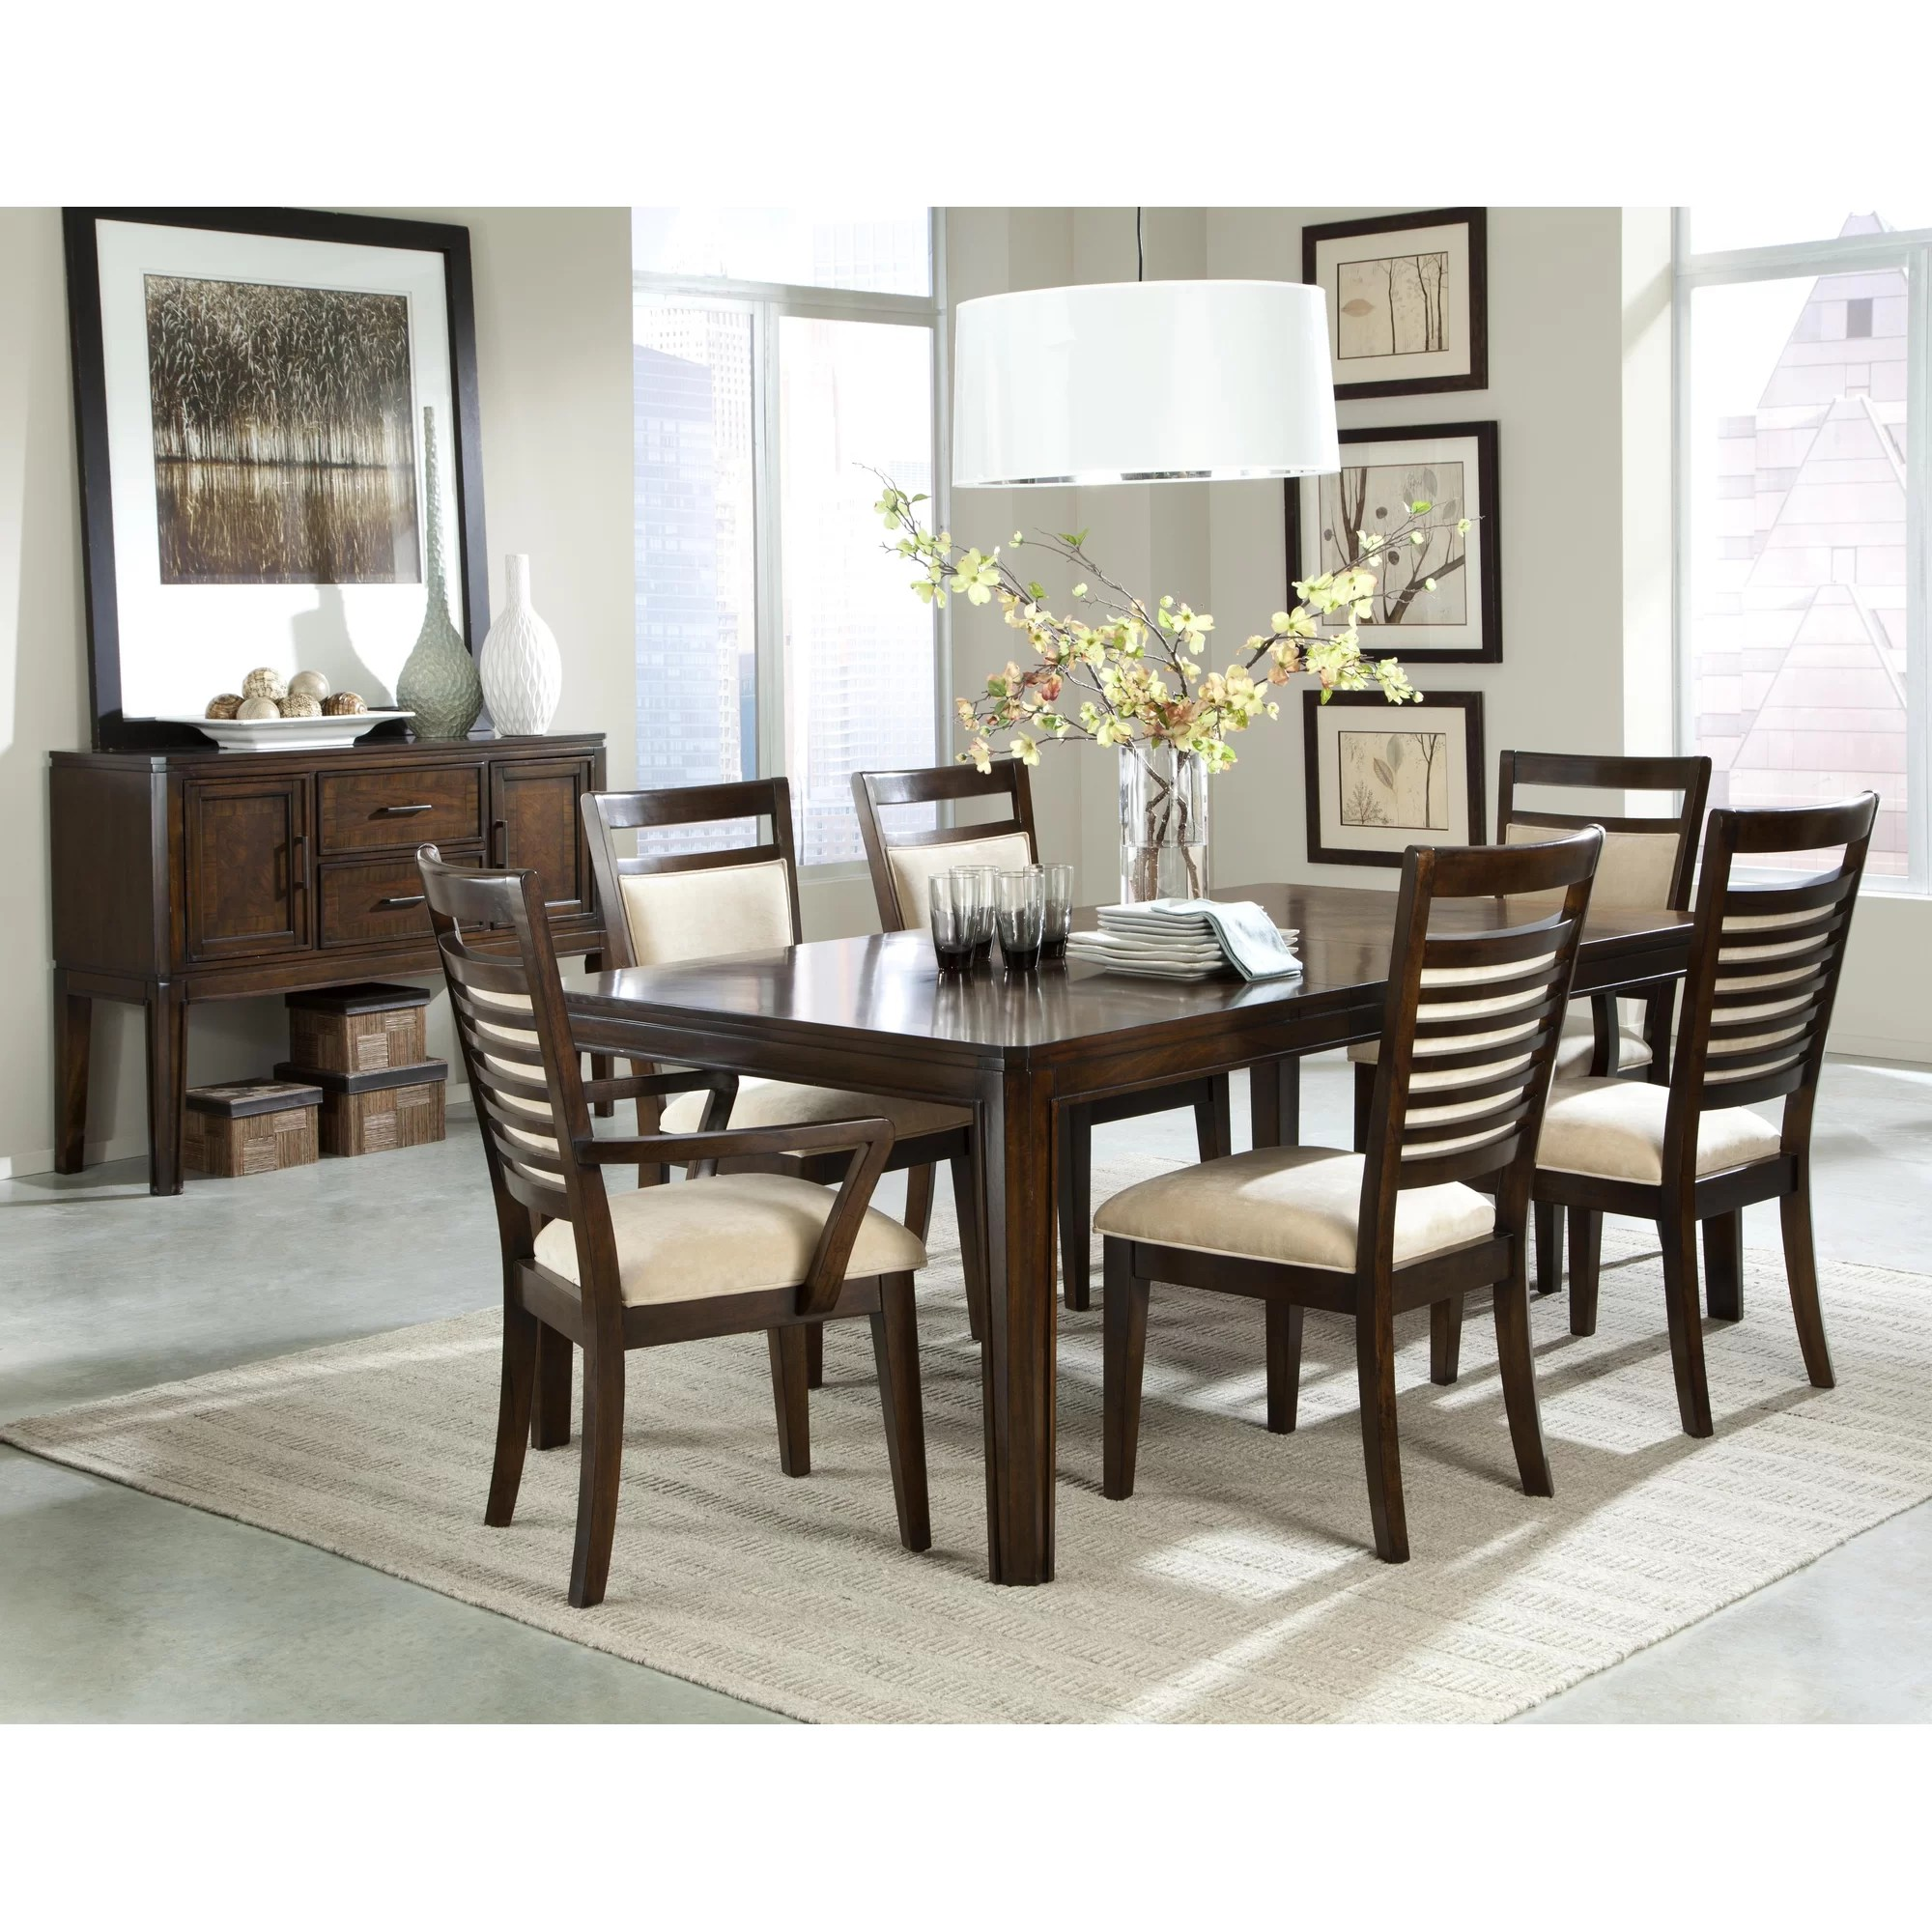 steel chair price in bangladesh reclining leather latitude run bellevue 7 pieces dining set and reviews wayfair